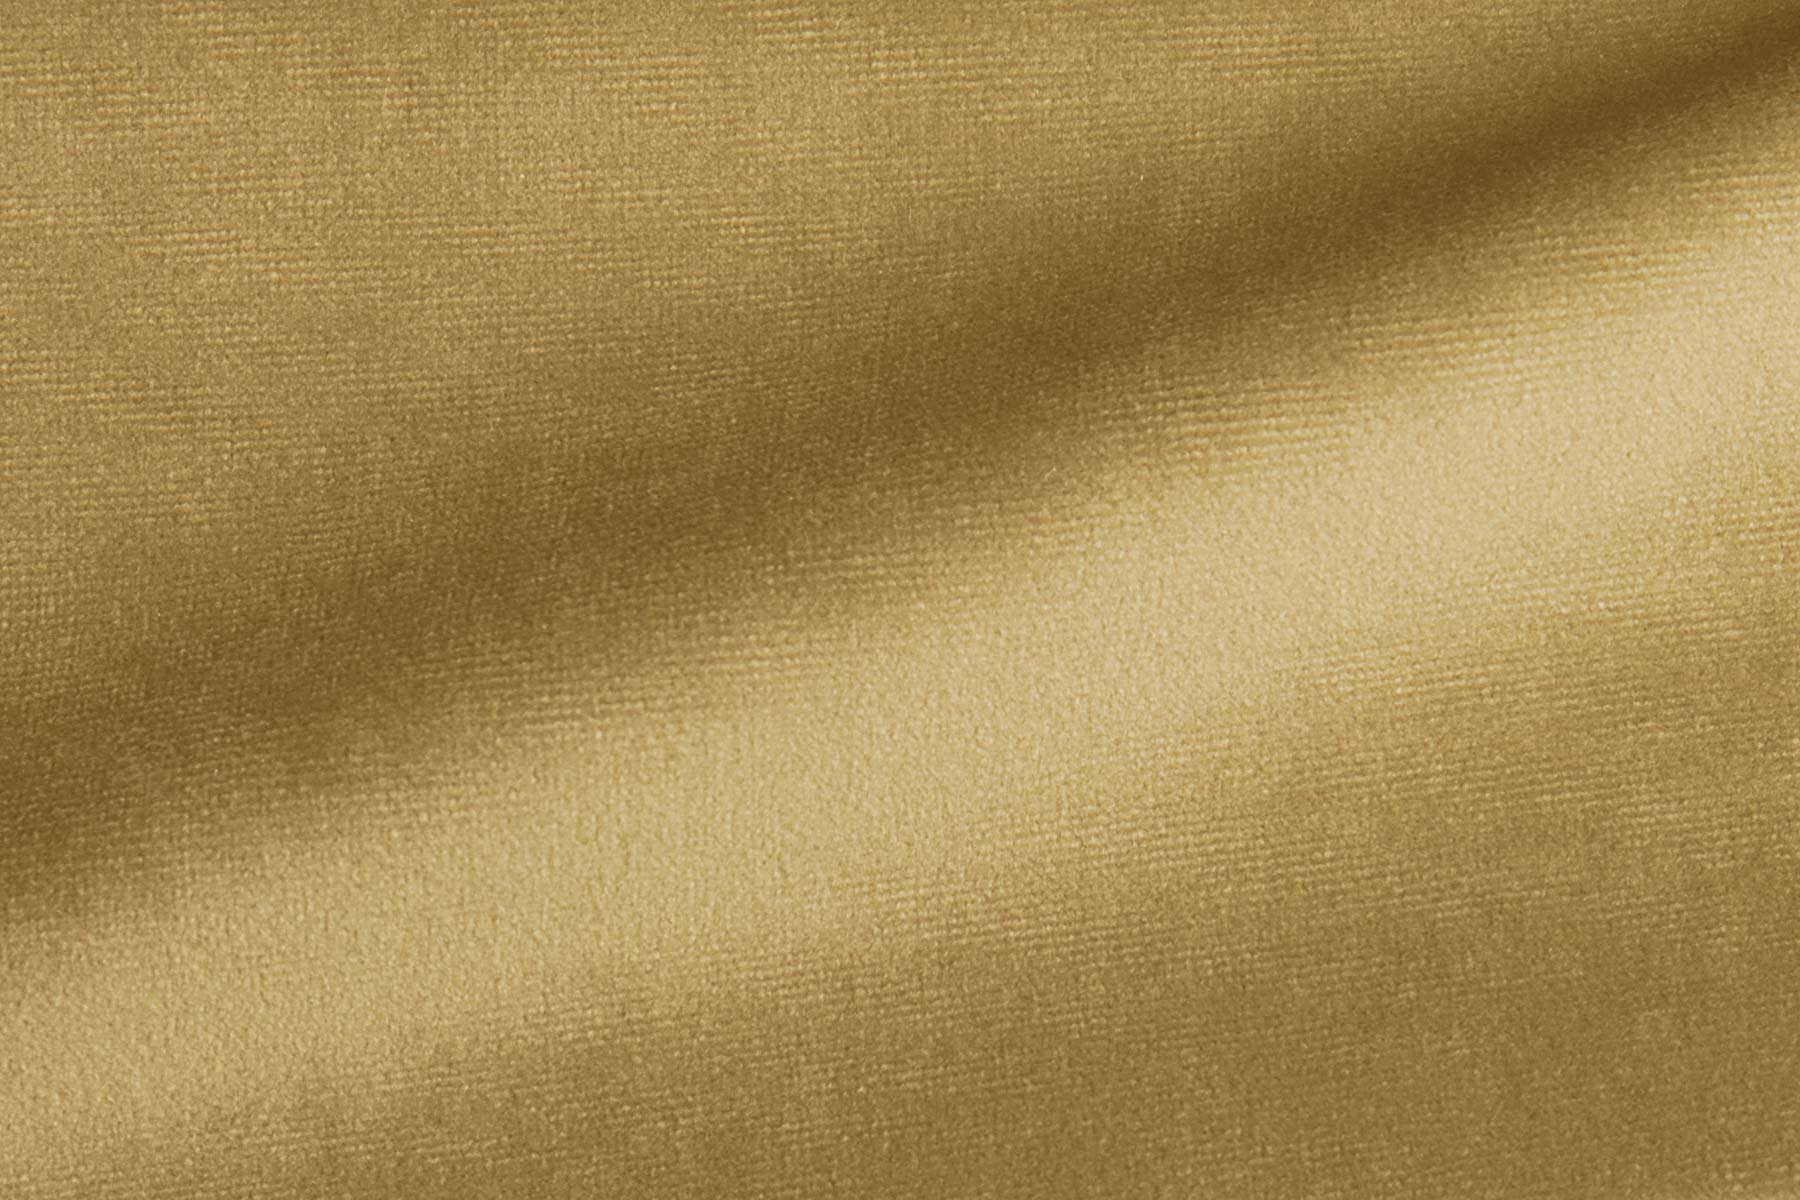 PARIS VELVET CAMEL Fabric by KOKET